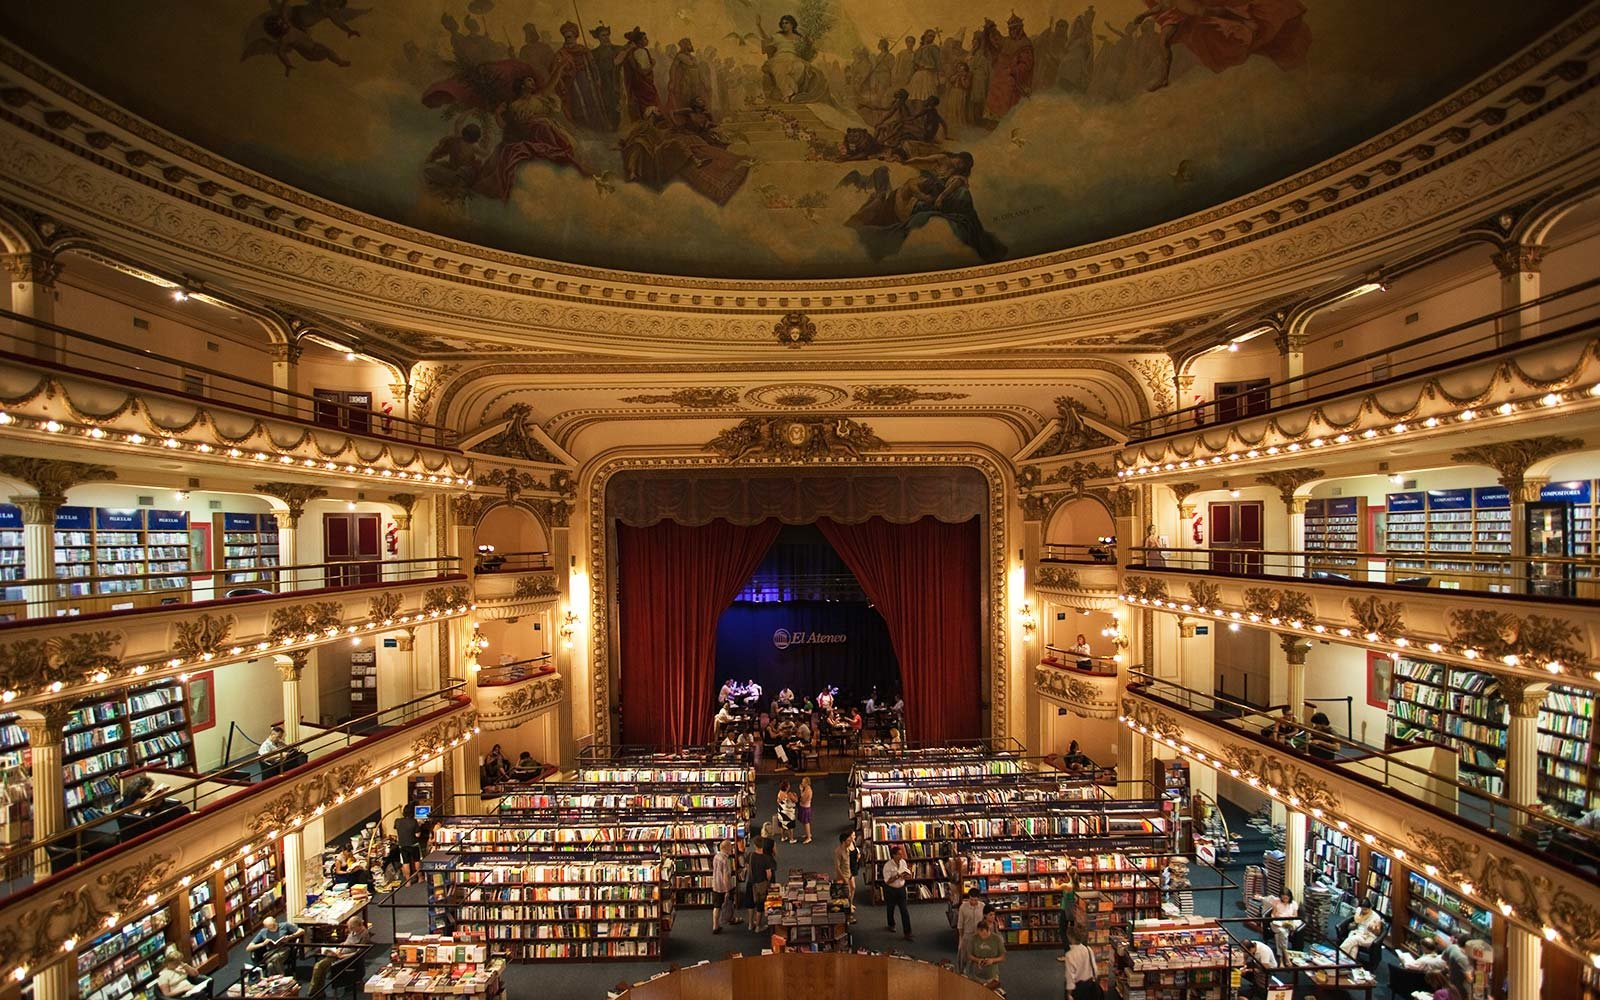 El Ateneo Grand Splendid Bookstore in Argentina